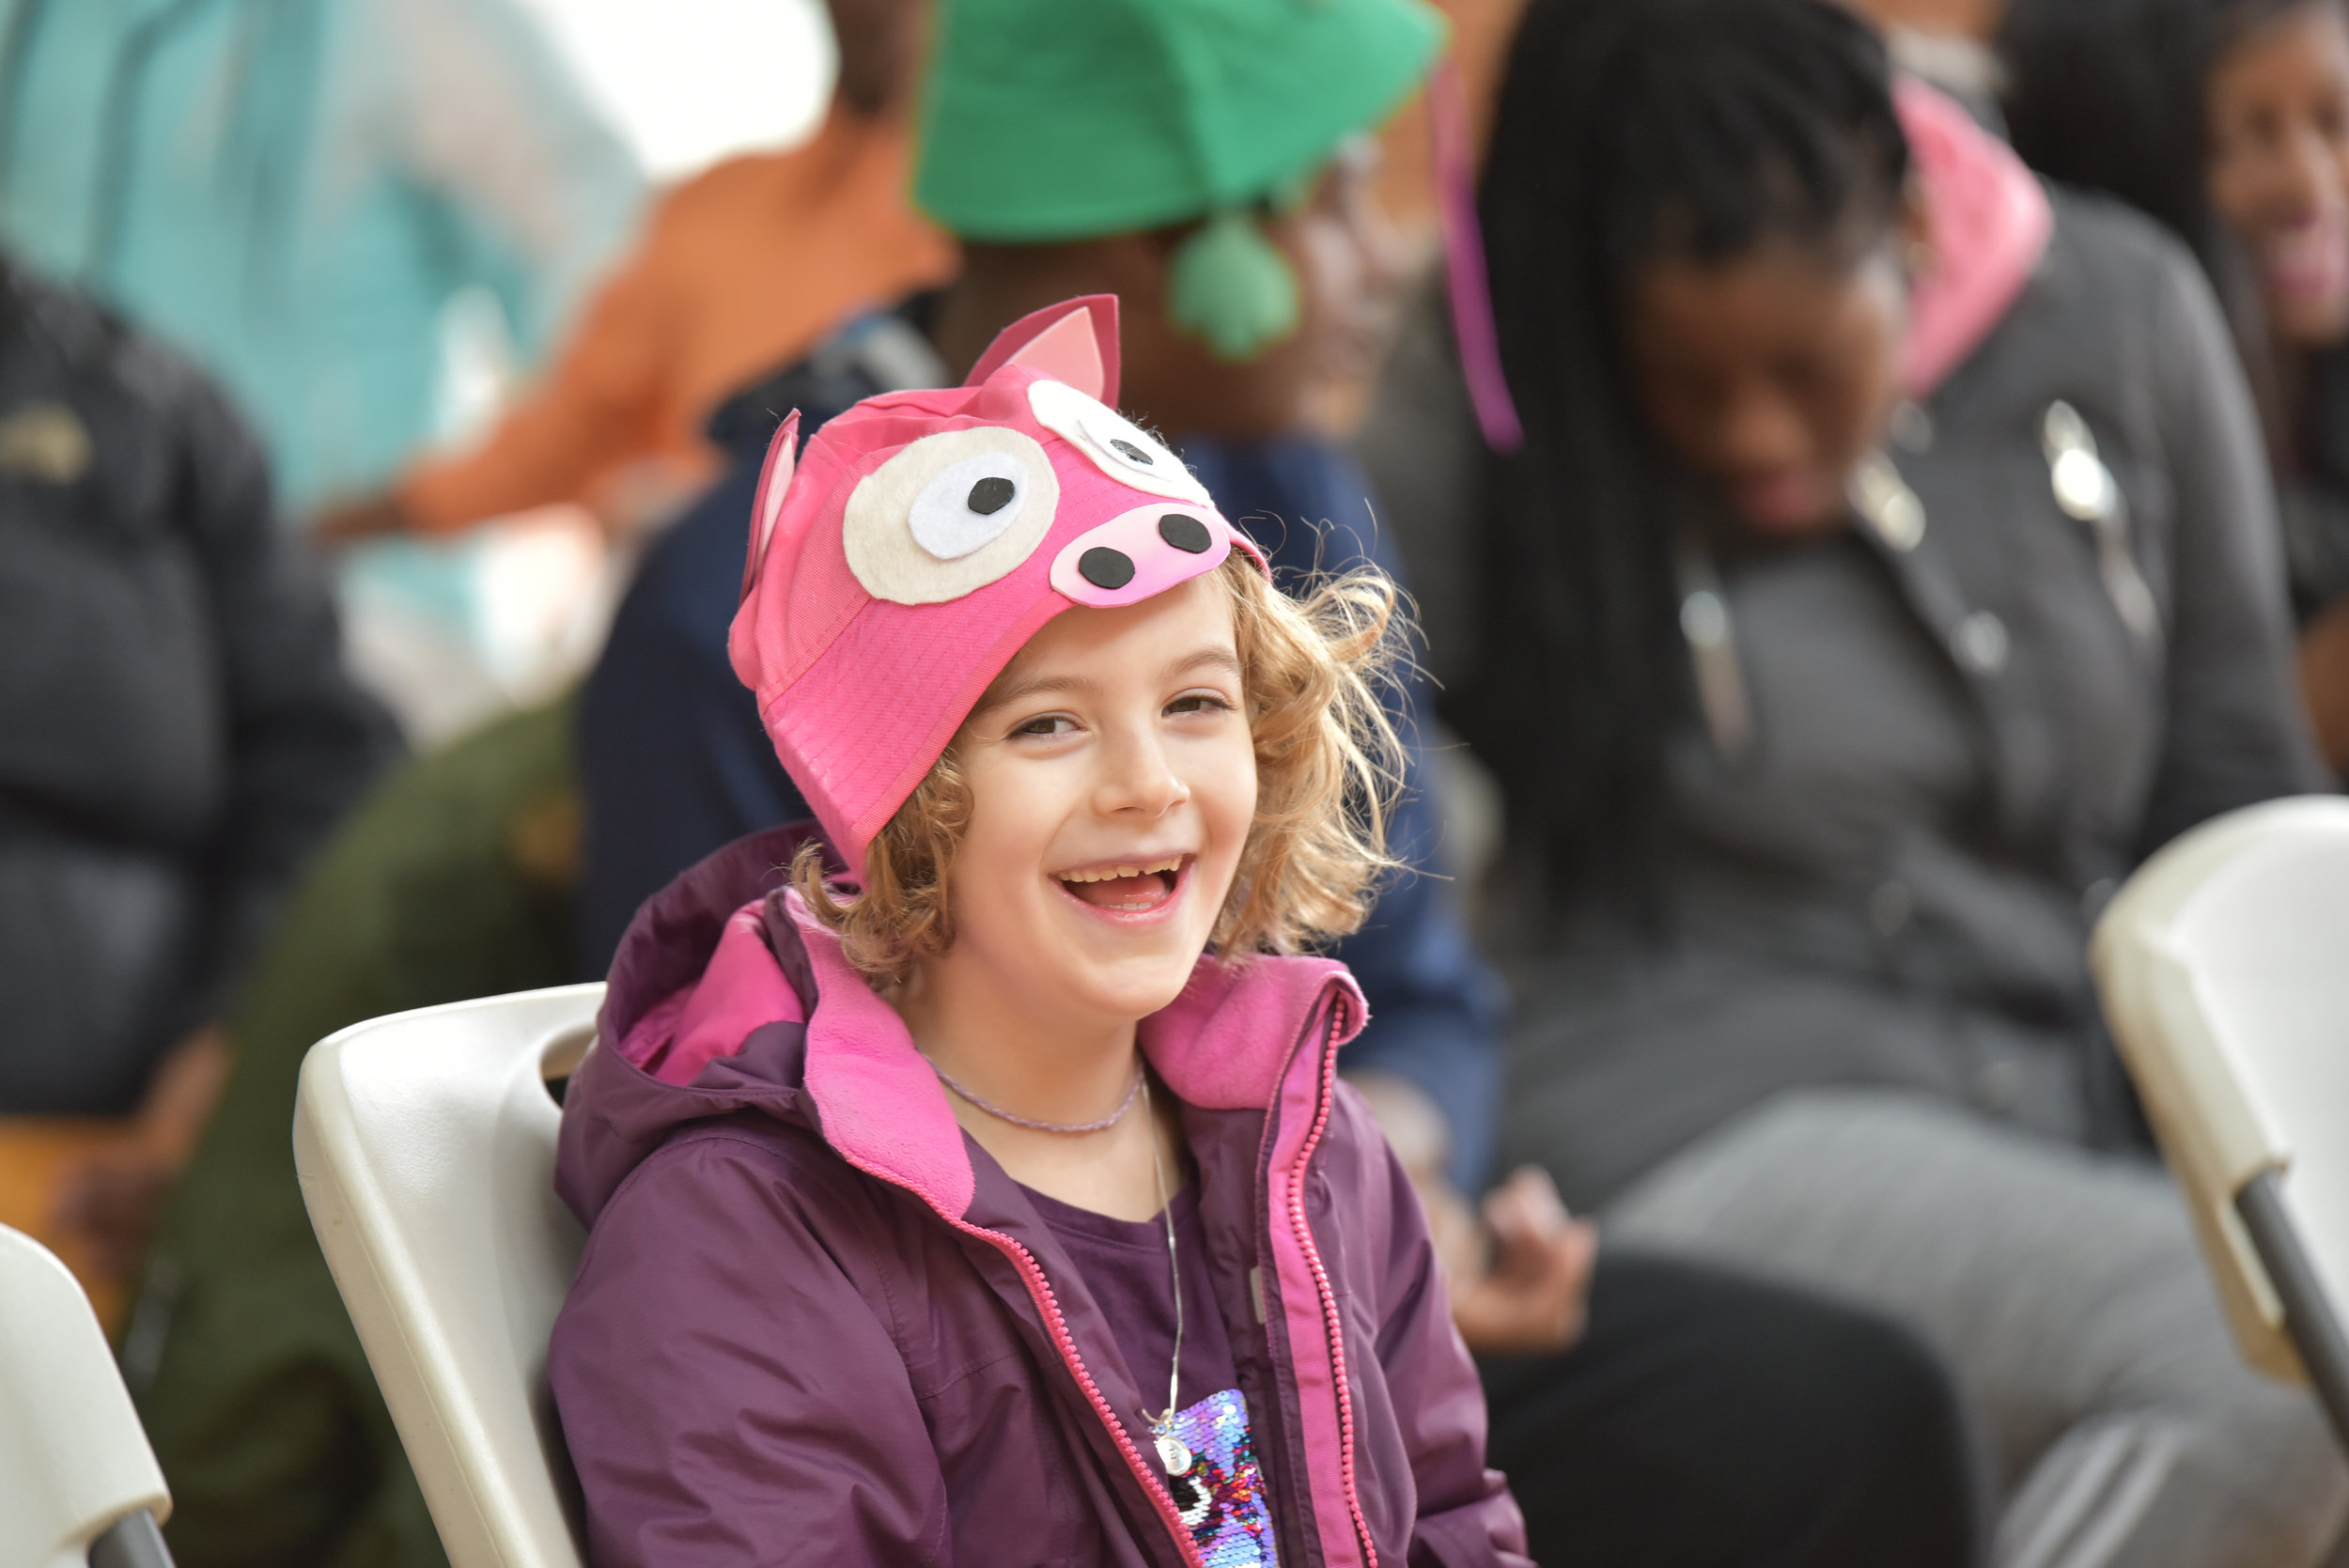 Child smiling during children's theatre performance